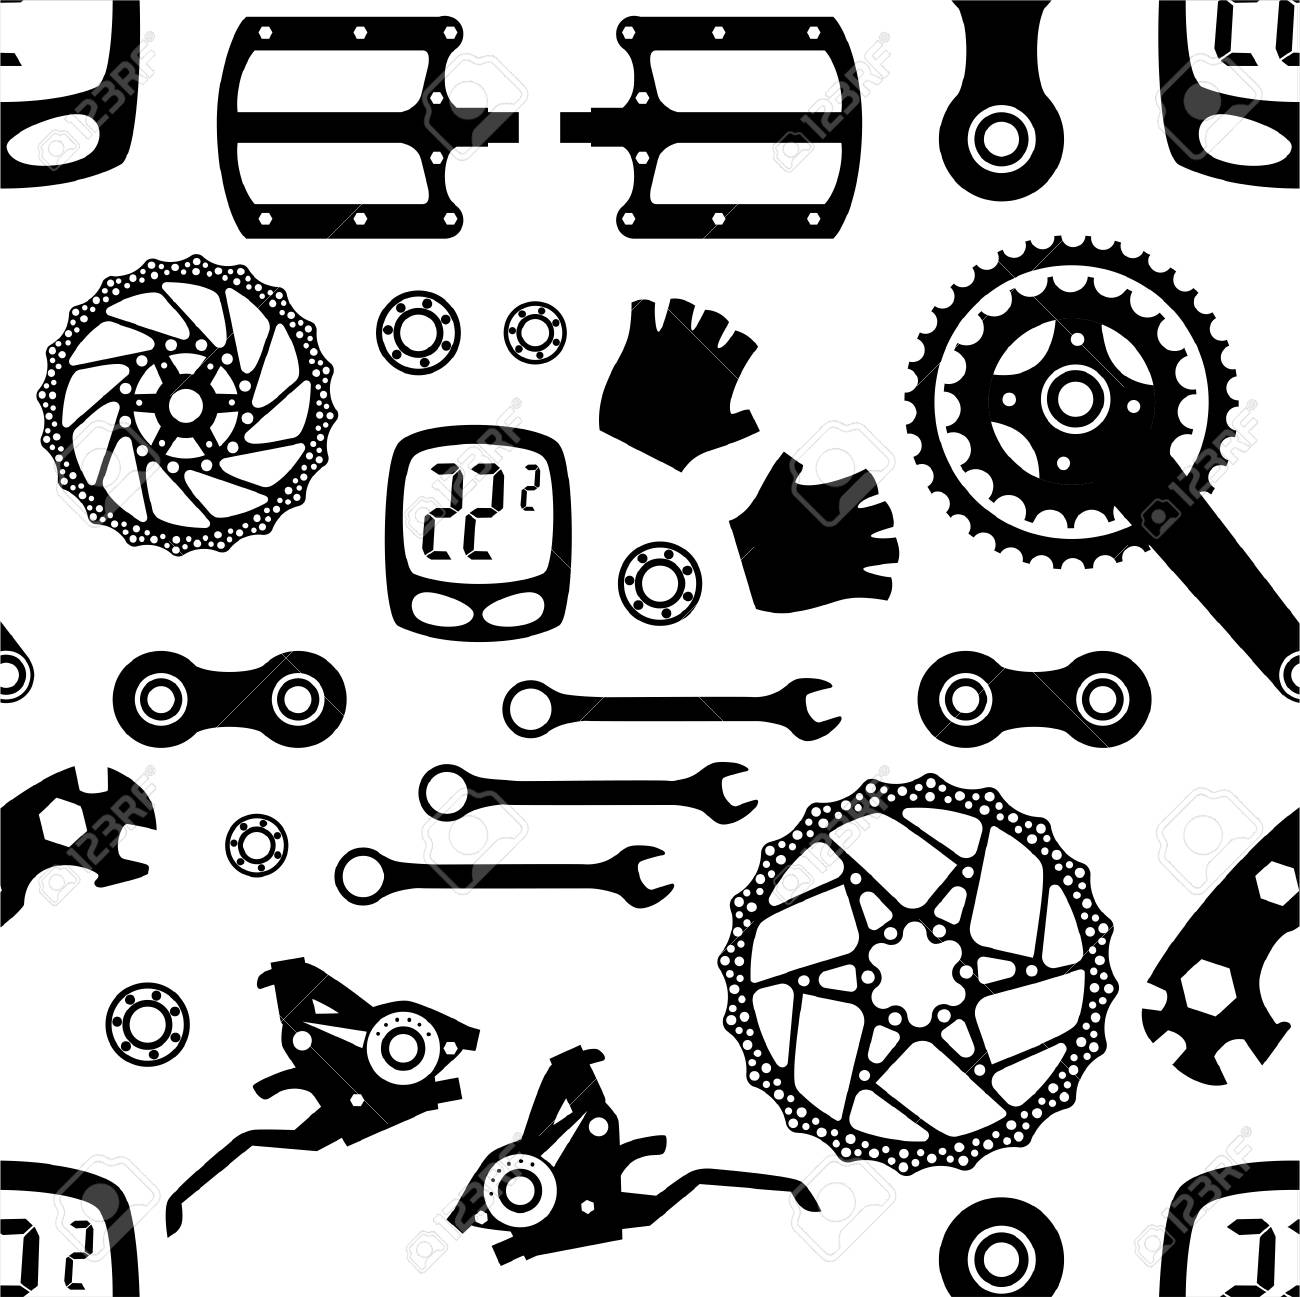 Bicycle Parts Seamless Pattern Vector Illustration Royalty Free